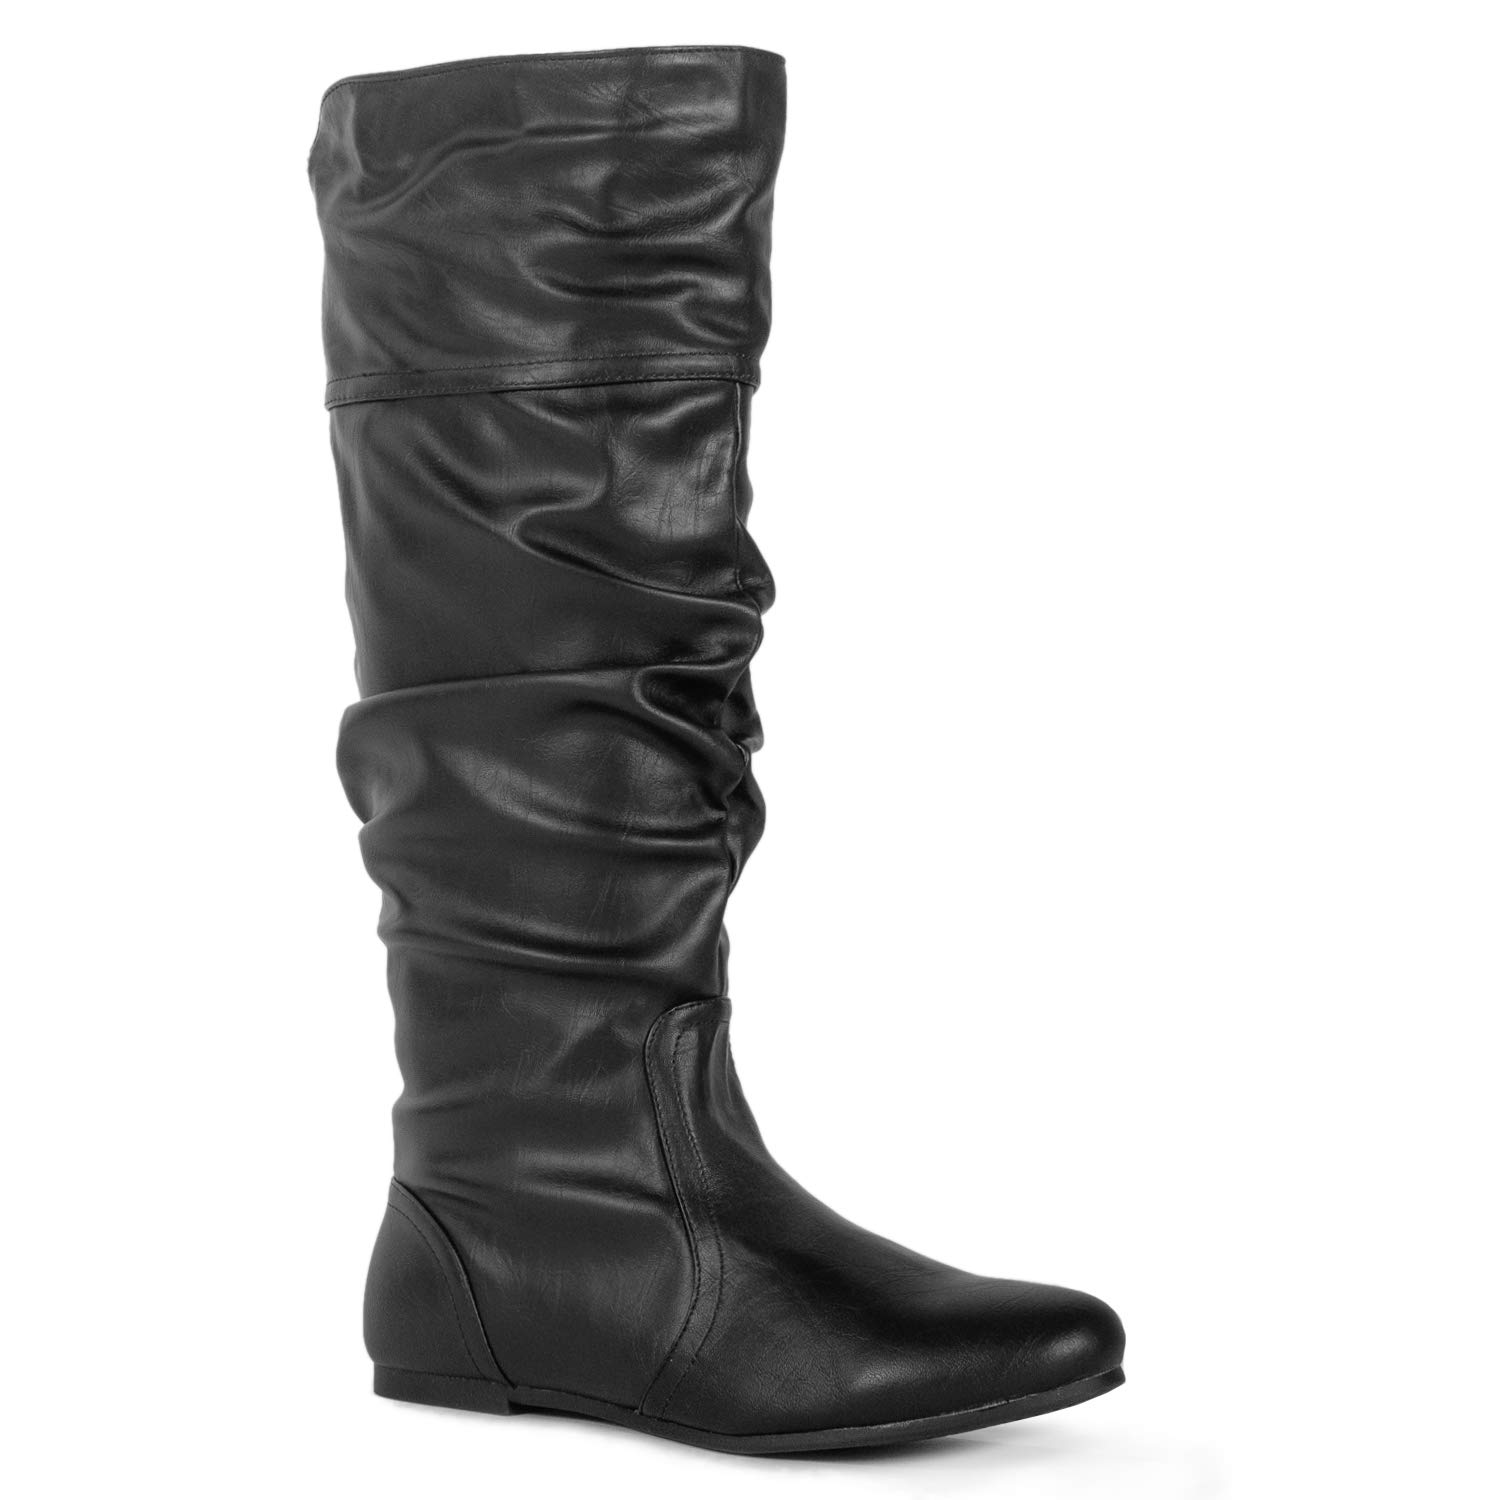 RF ROOM OF FASHION Touched-11 Boots (Black PU Size 7.5)